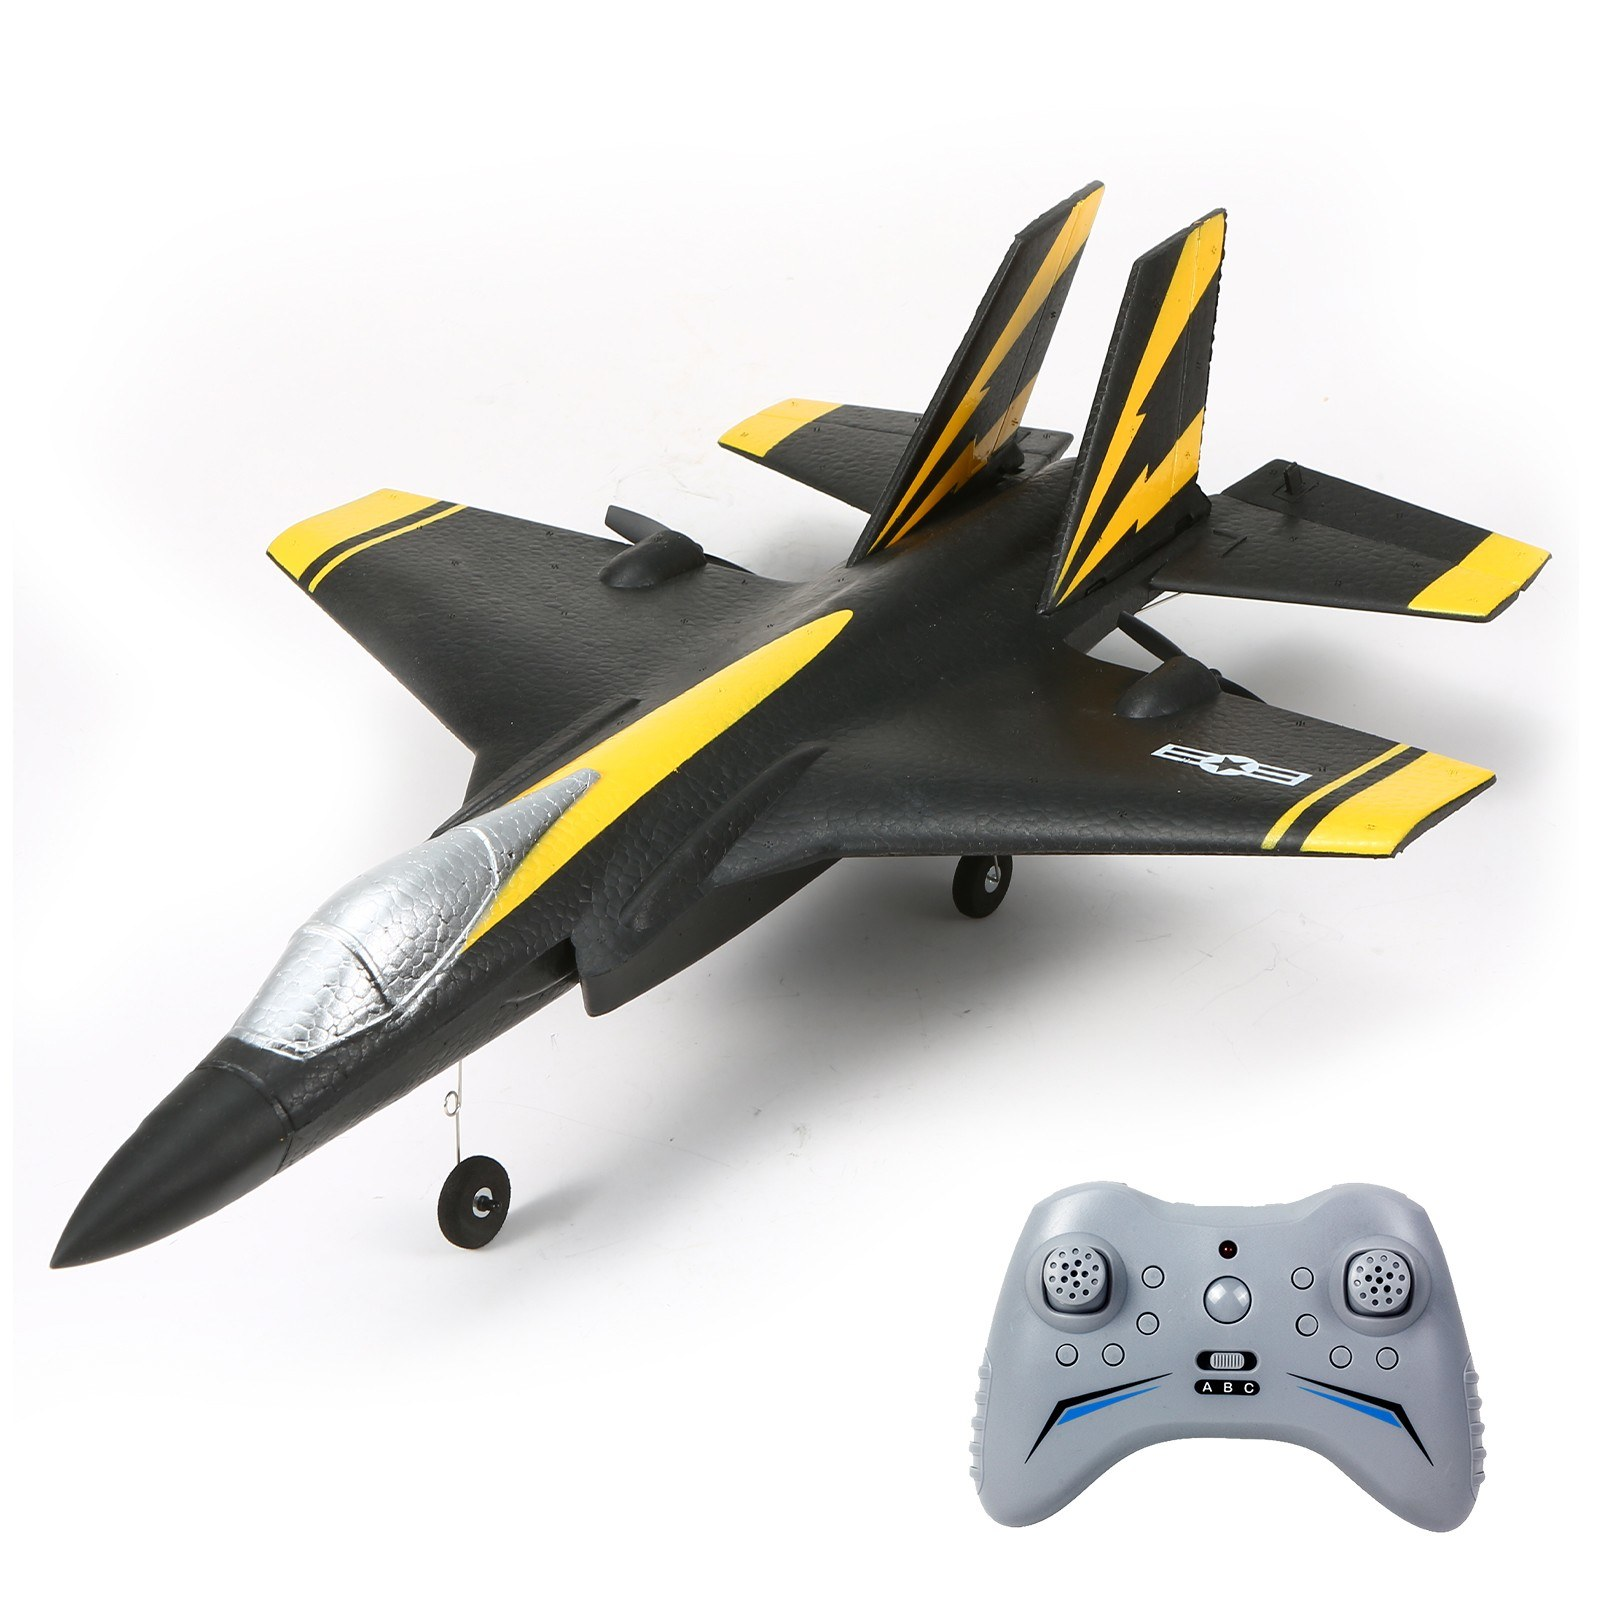 cafago.com - 61% OFF FX935 2.4G 3CH RC Airplane Flying Aircraft Combat Aircraft with LED Searchlight,free shipping+$65.61